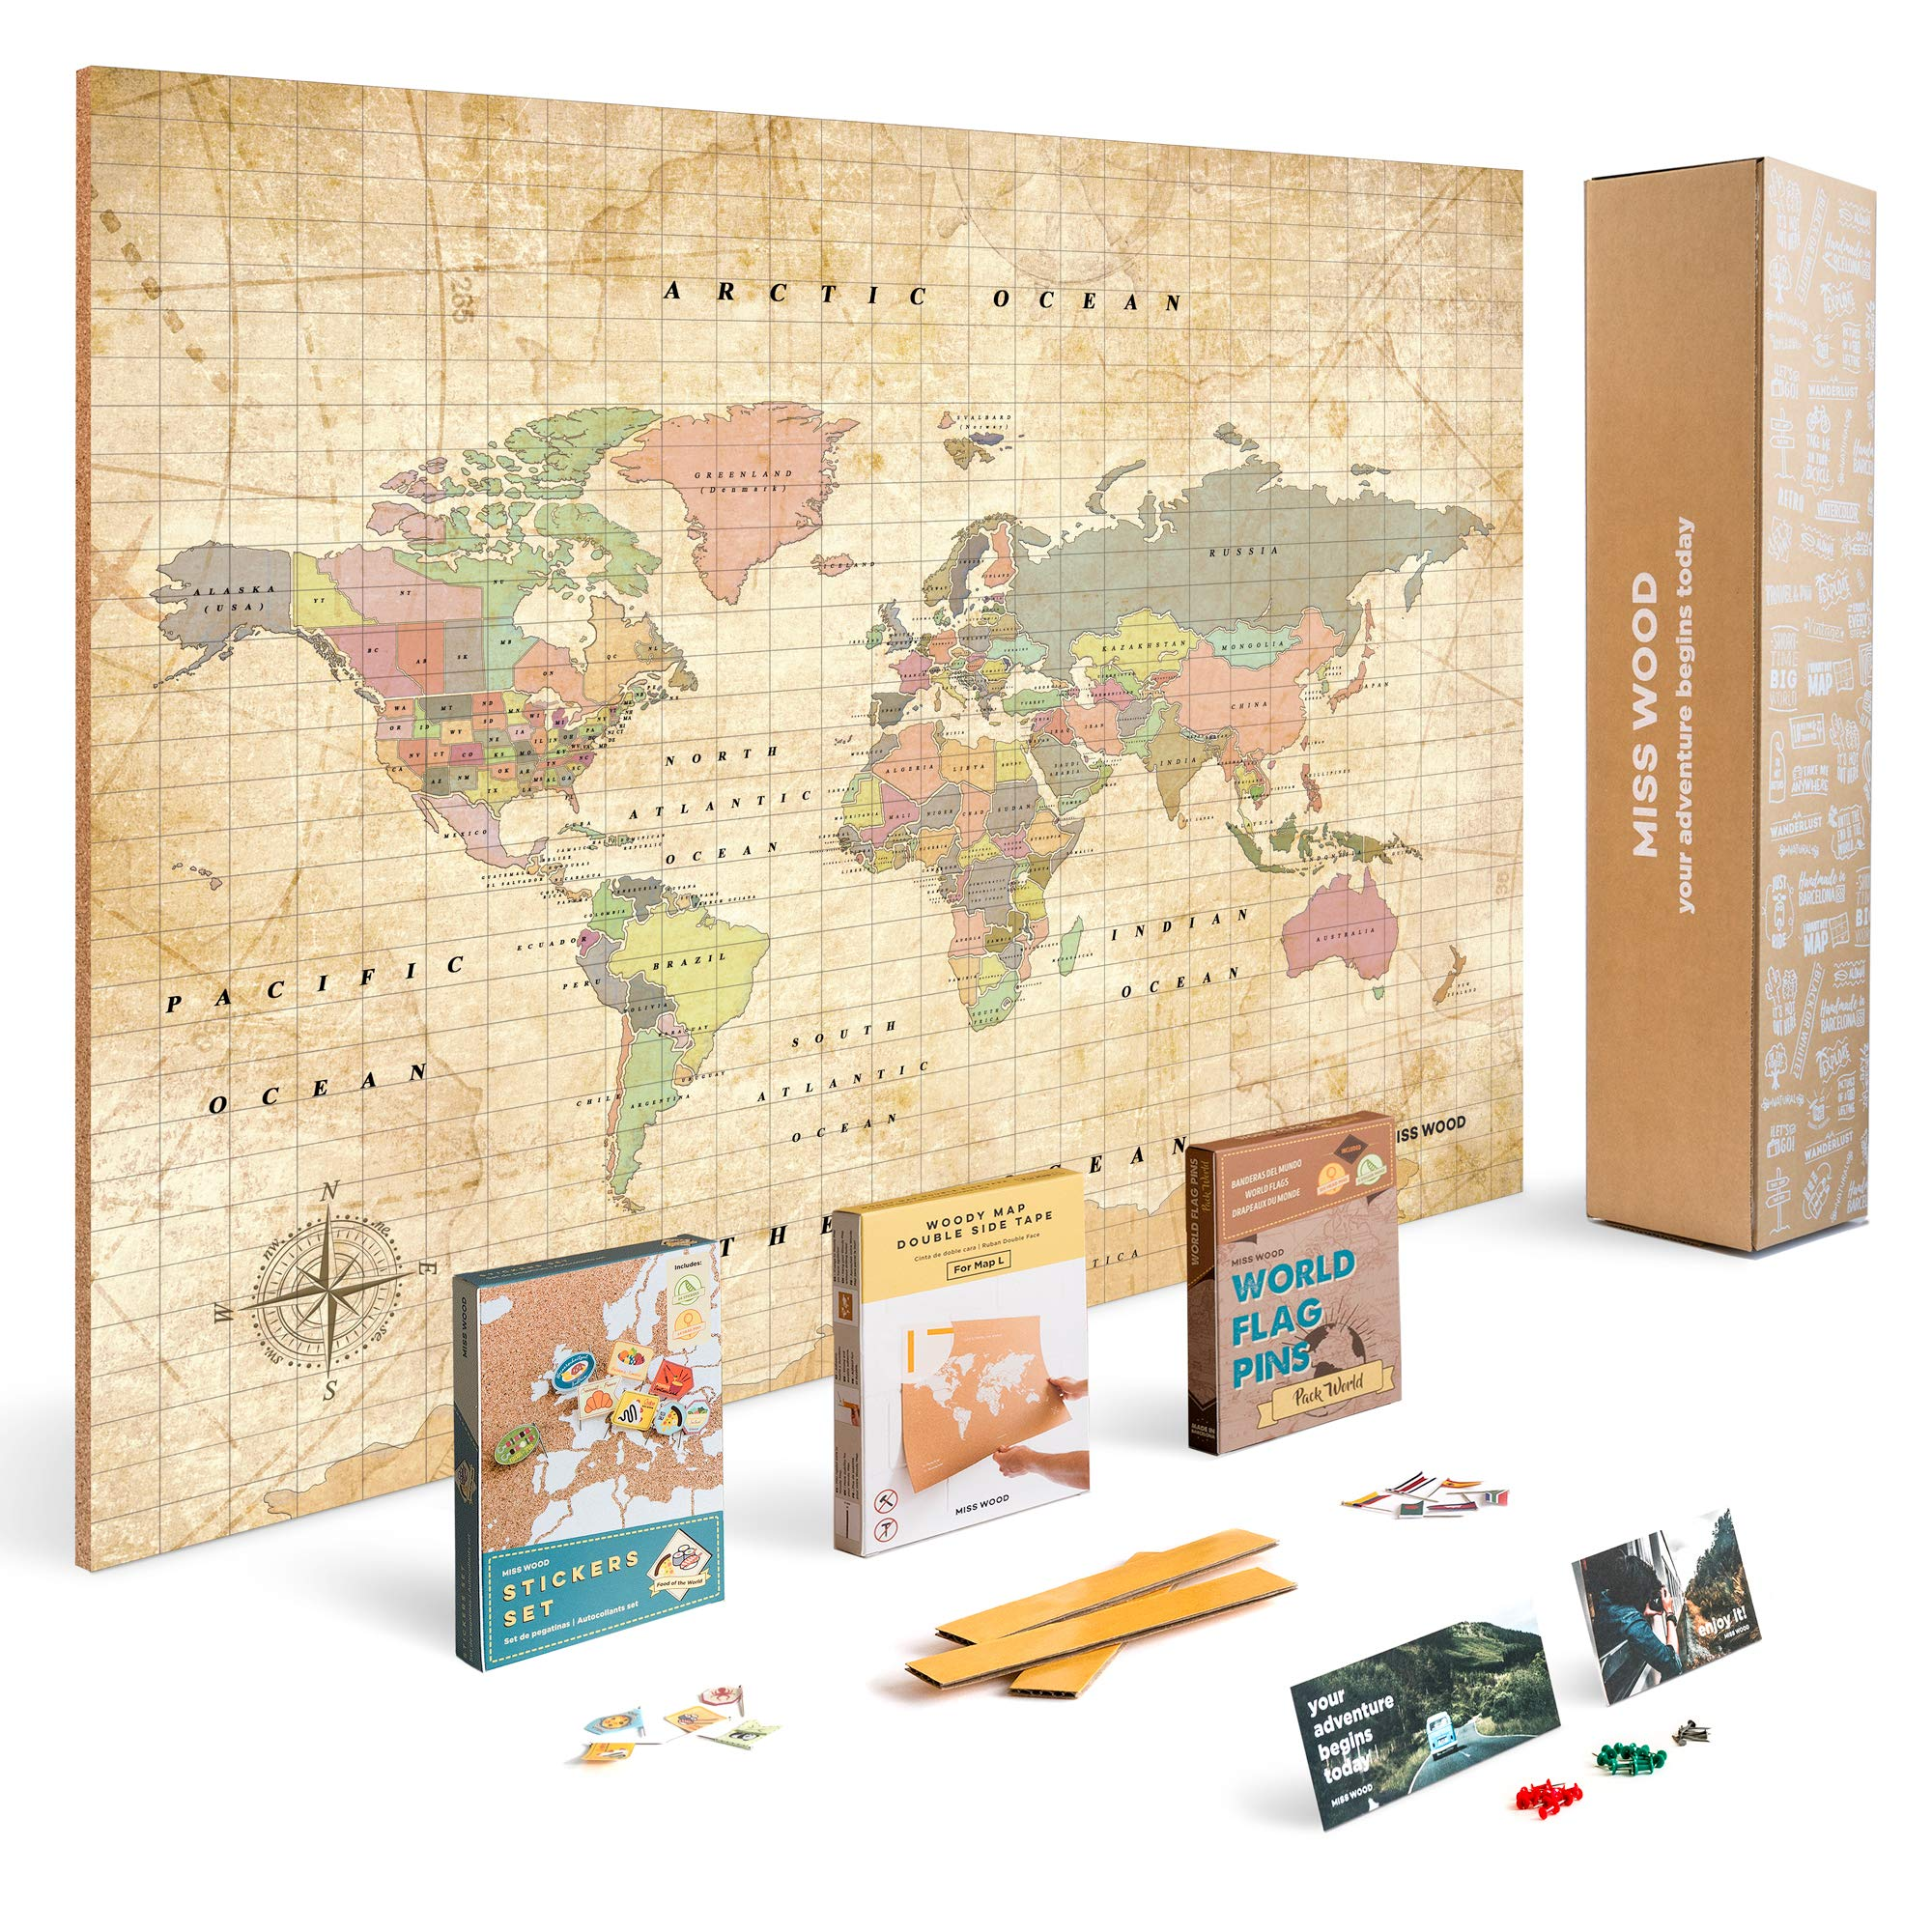 Push Pin Travel Map Kit Includes: Cork World Travel Map, World Flags, Food Stickers, for Travelers (Old School, L (17.7 x 23.6 inches))